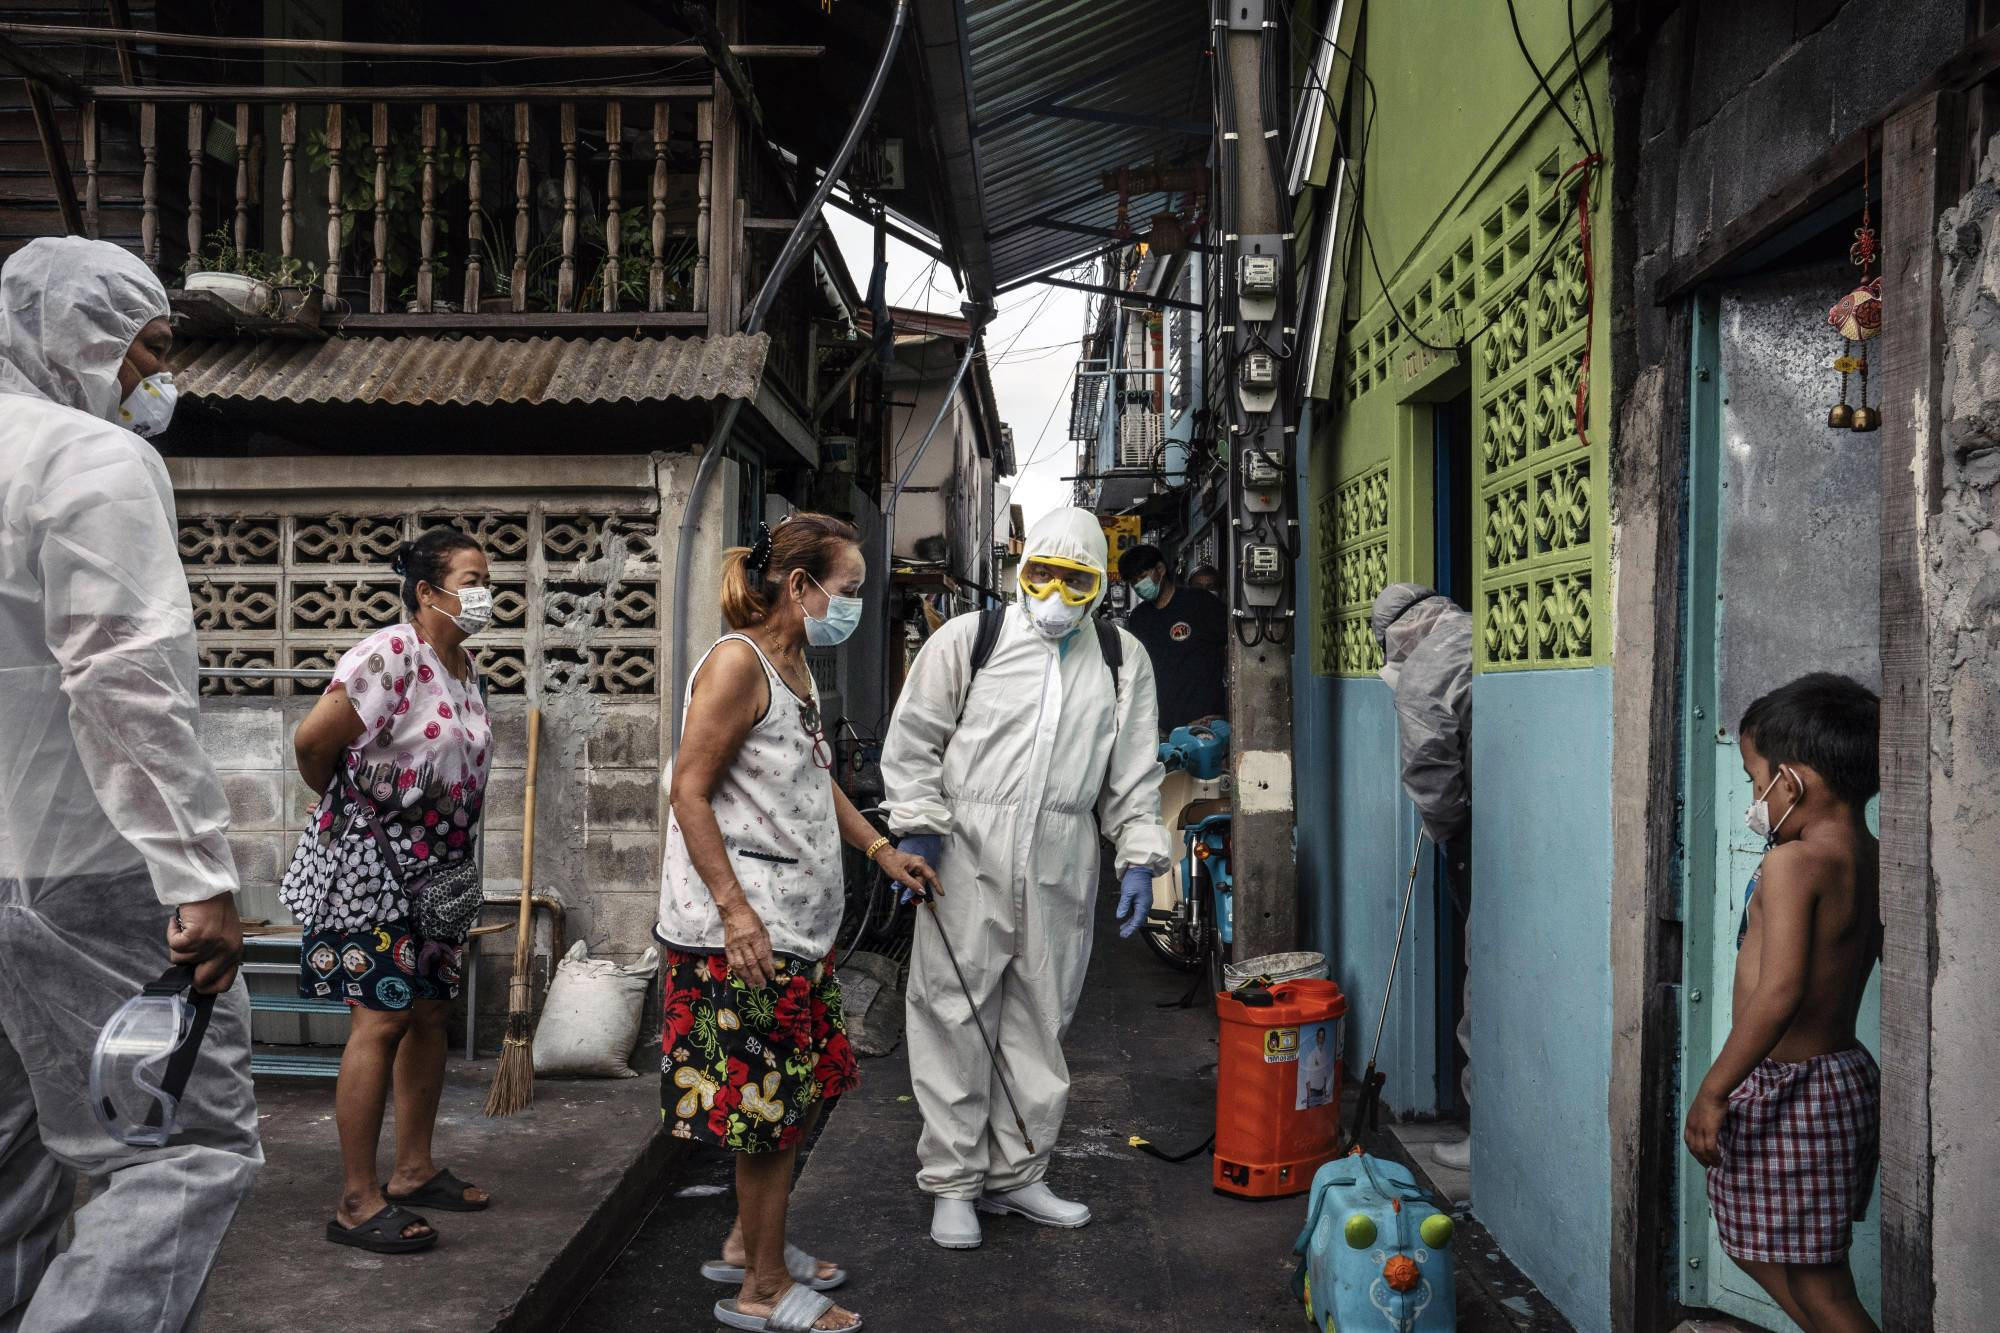 Workers prepare to spray disinfectant in homes where people tested positive for COVID-19 in Bangkok on May 7. All across the Asia-Pacific region, the countries that led the world in containing the coronavirus are now languishing in the race to put it behind them. | ADAM DEAN / THE NEW YORK TIMES